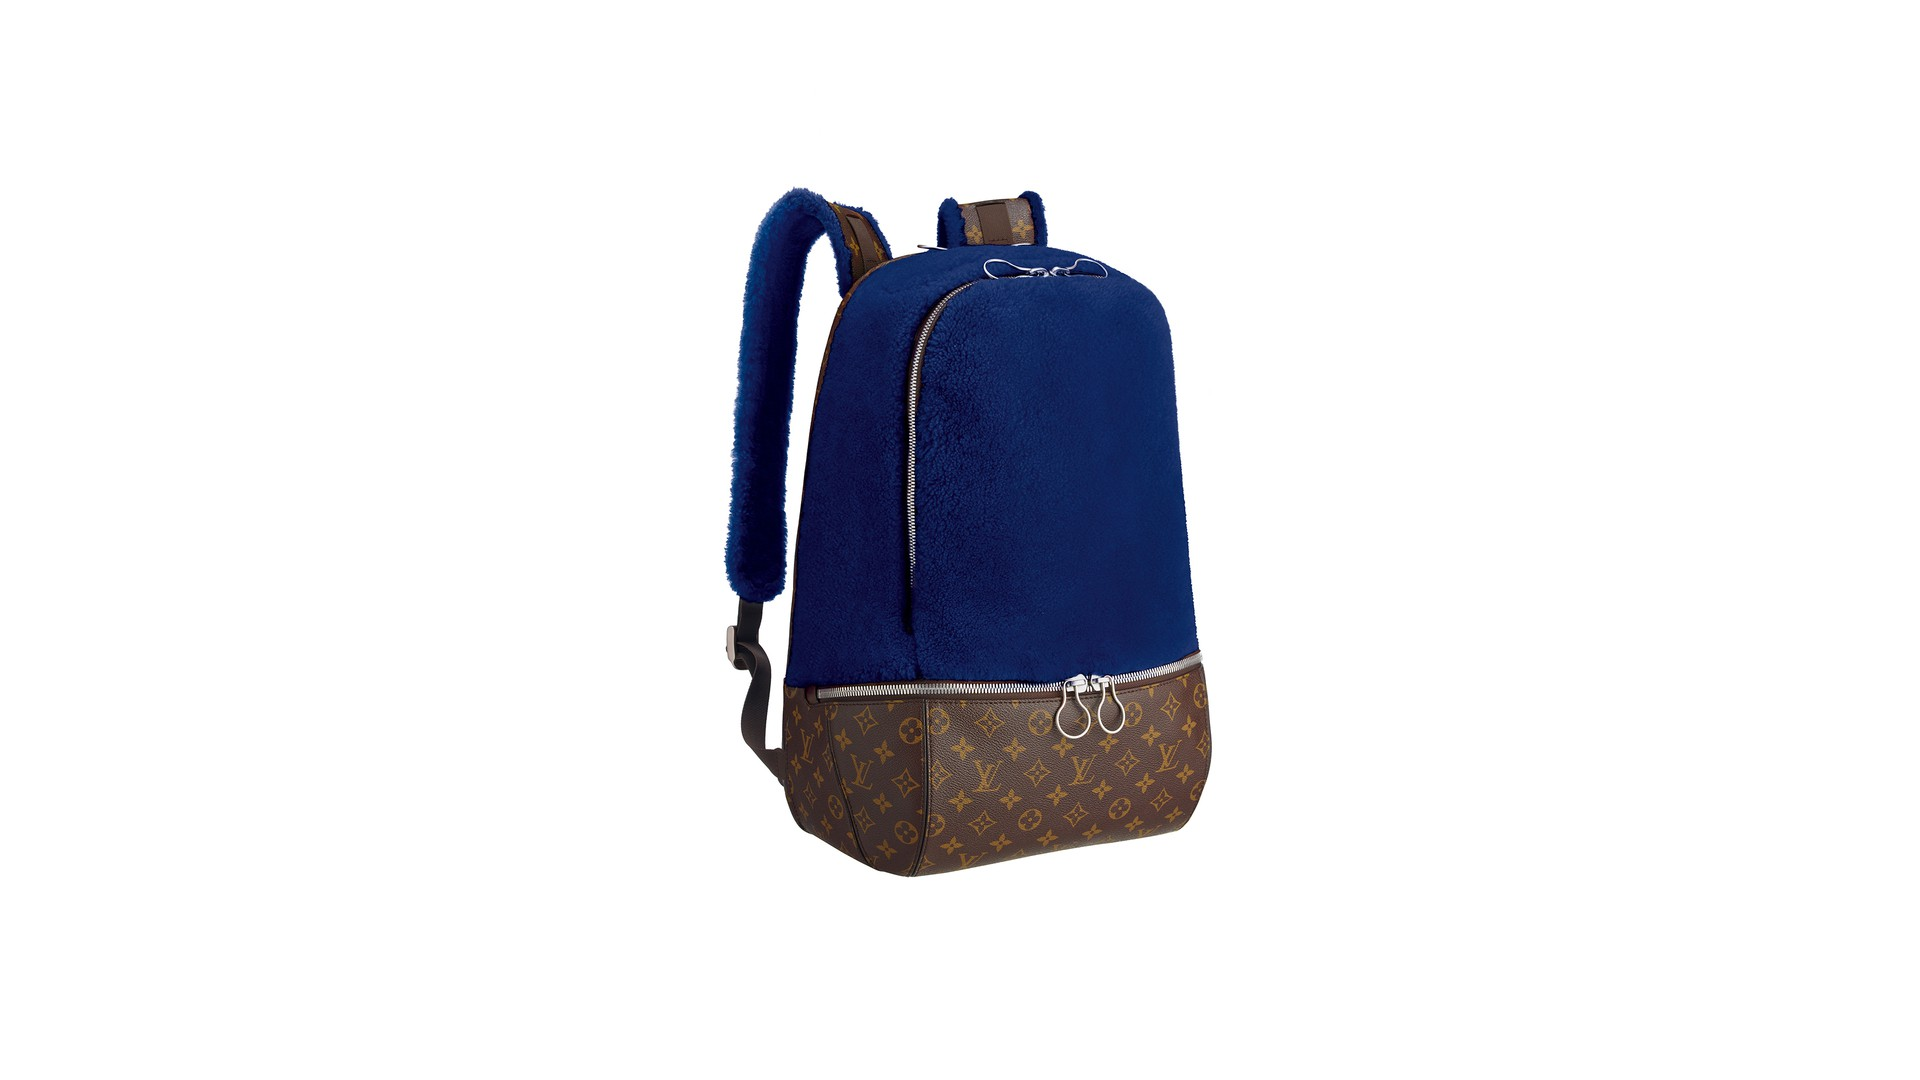 Celebrating Monogram Backpack